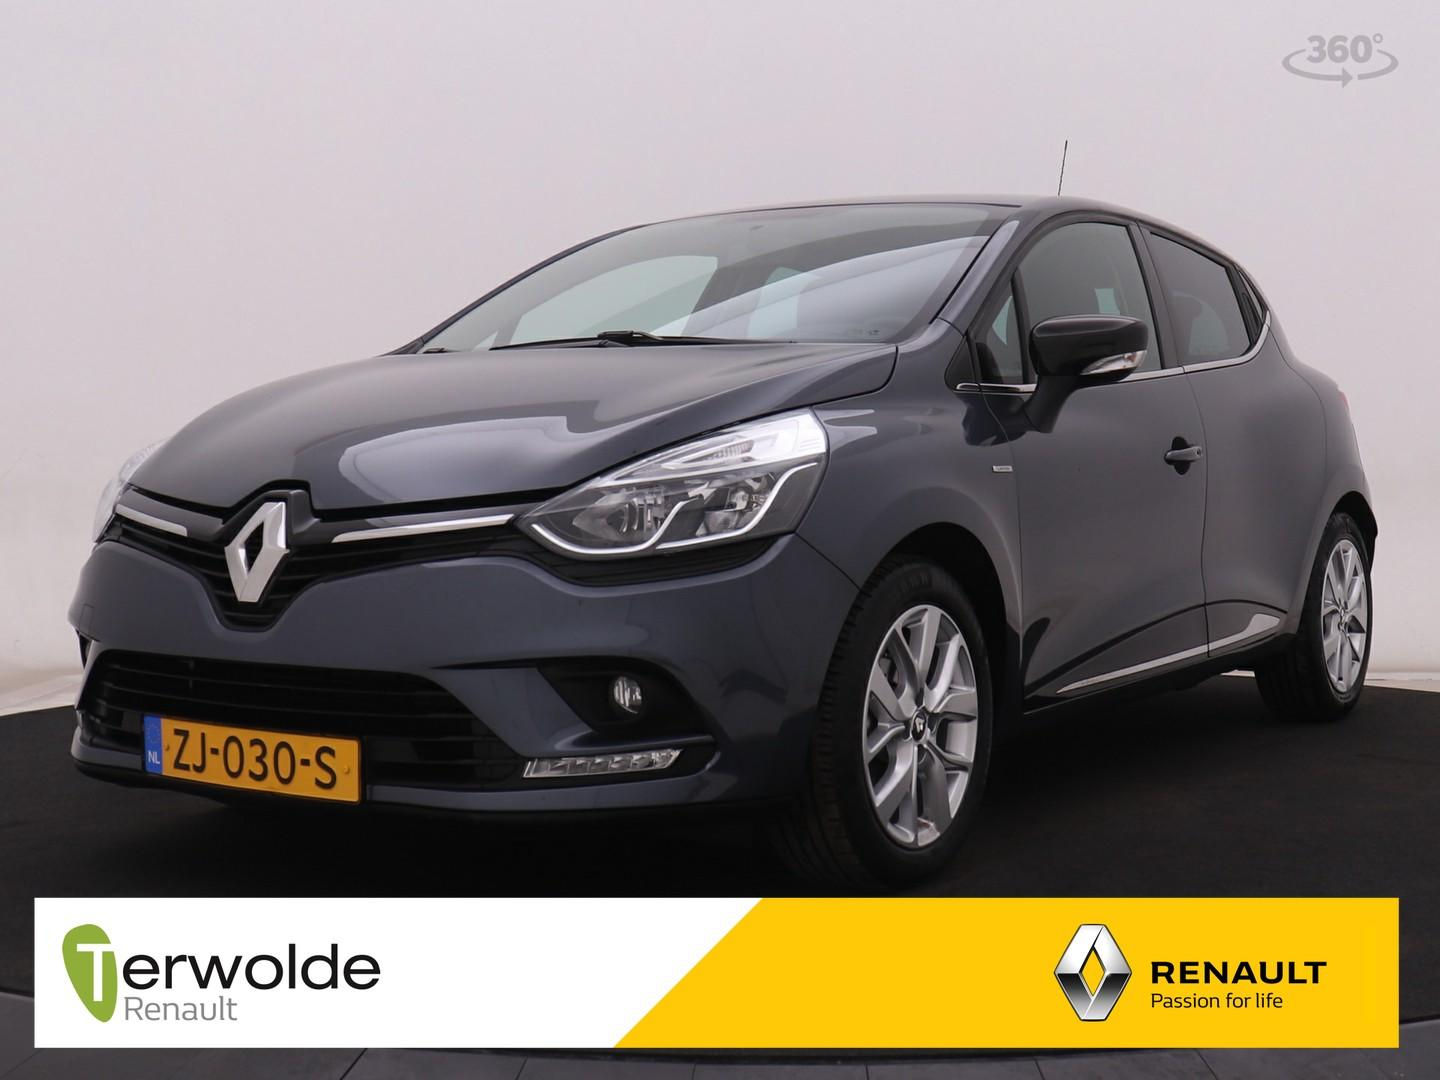 Renault Clio 0.9 tce limited 5drs